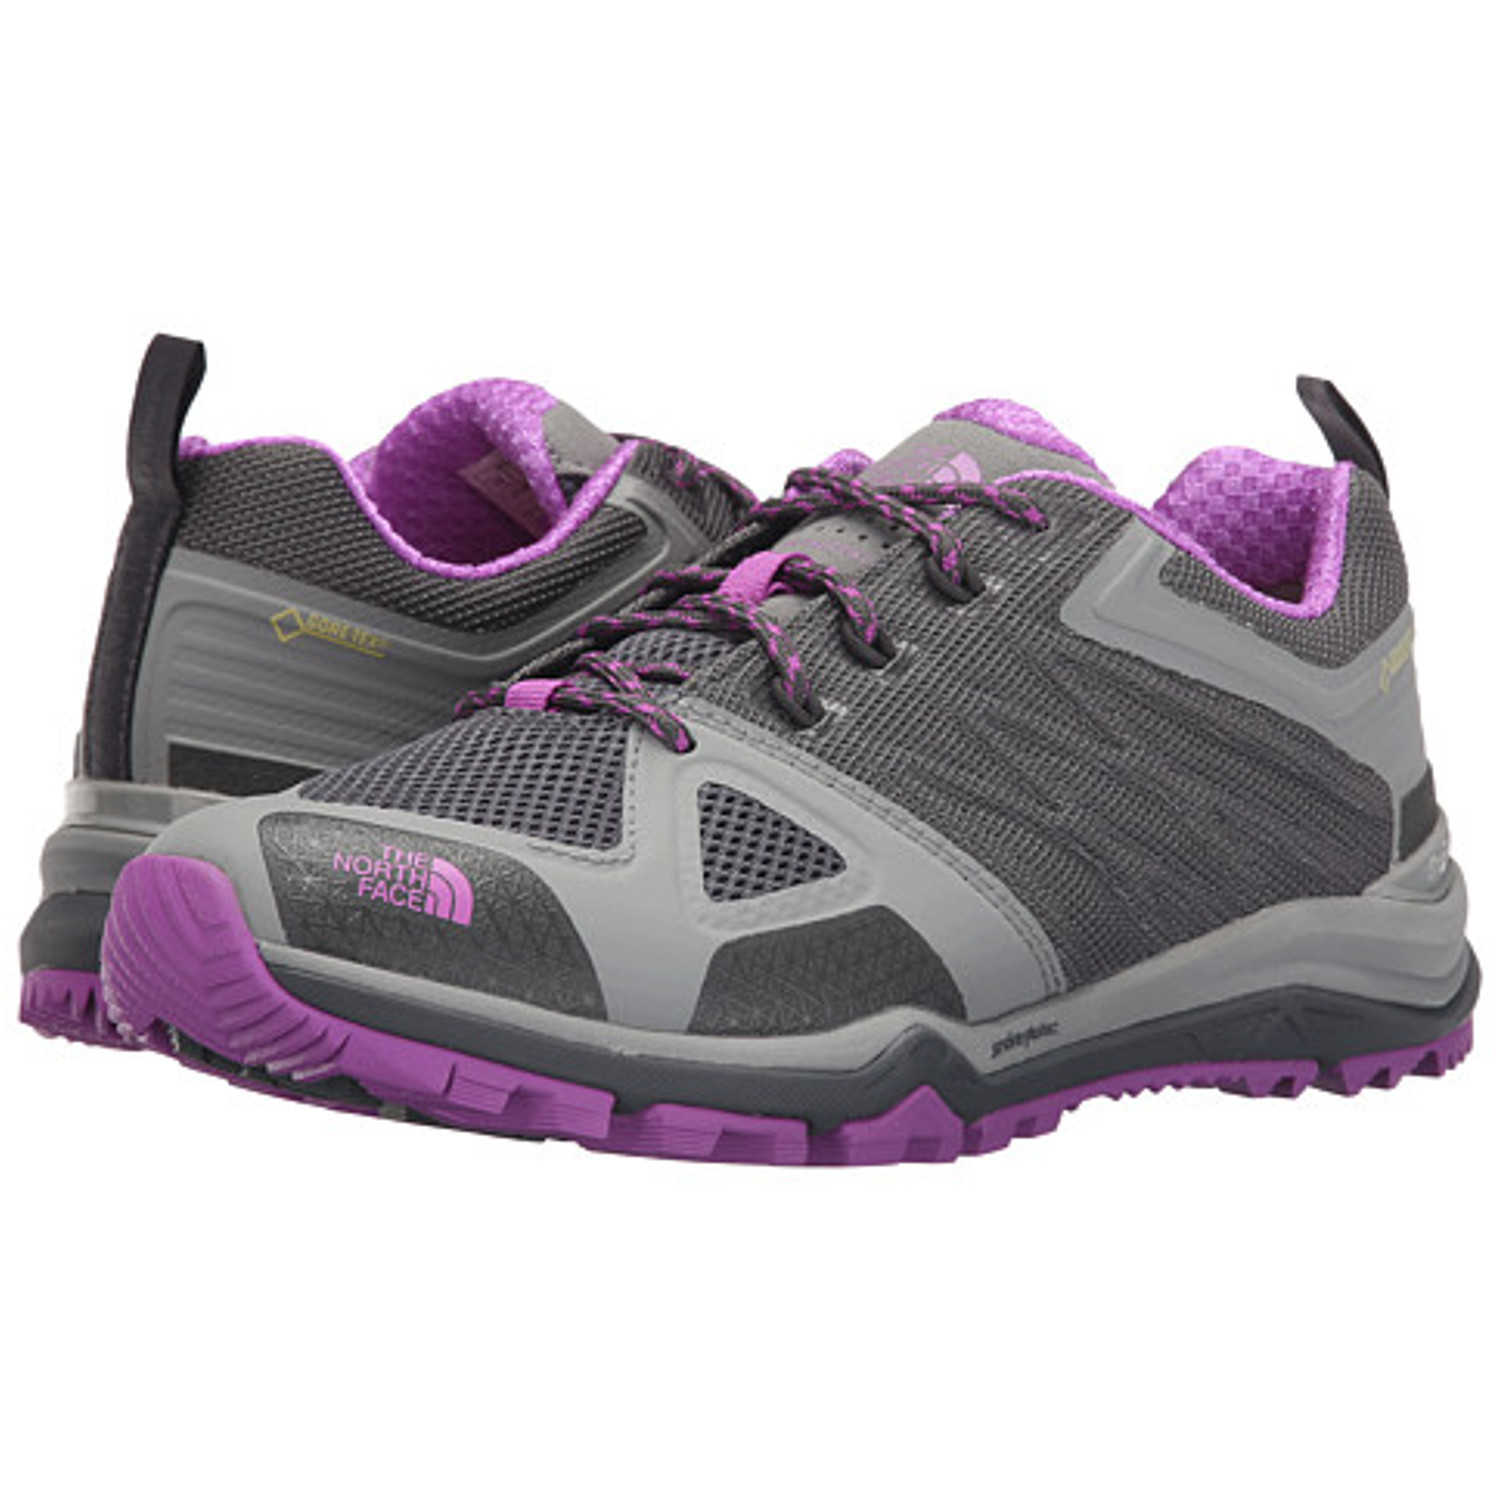 Chaussures Trail Ultra Cardiac Women - Violet/Gris